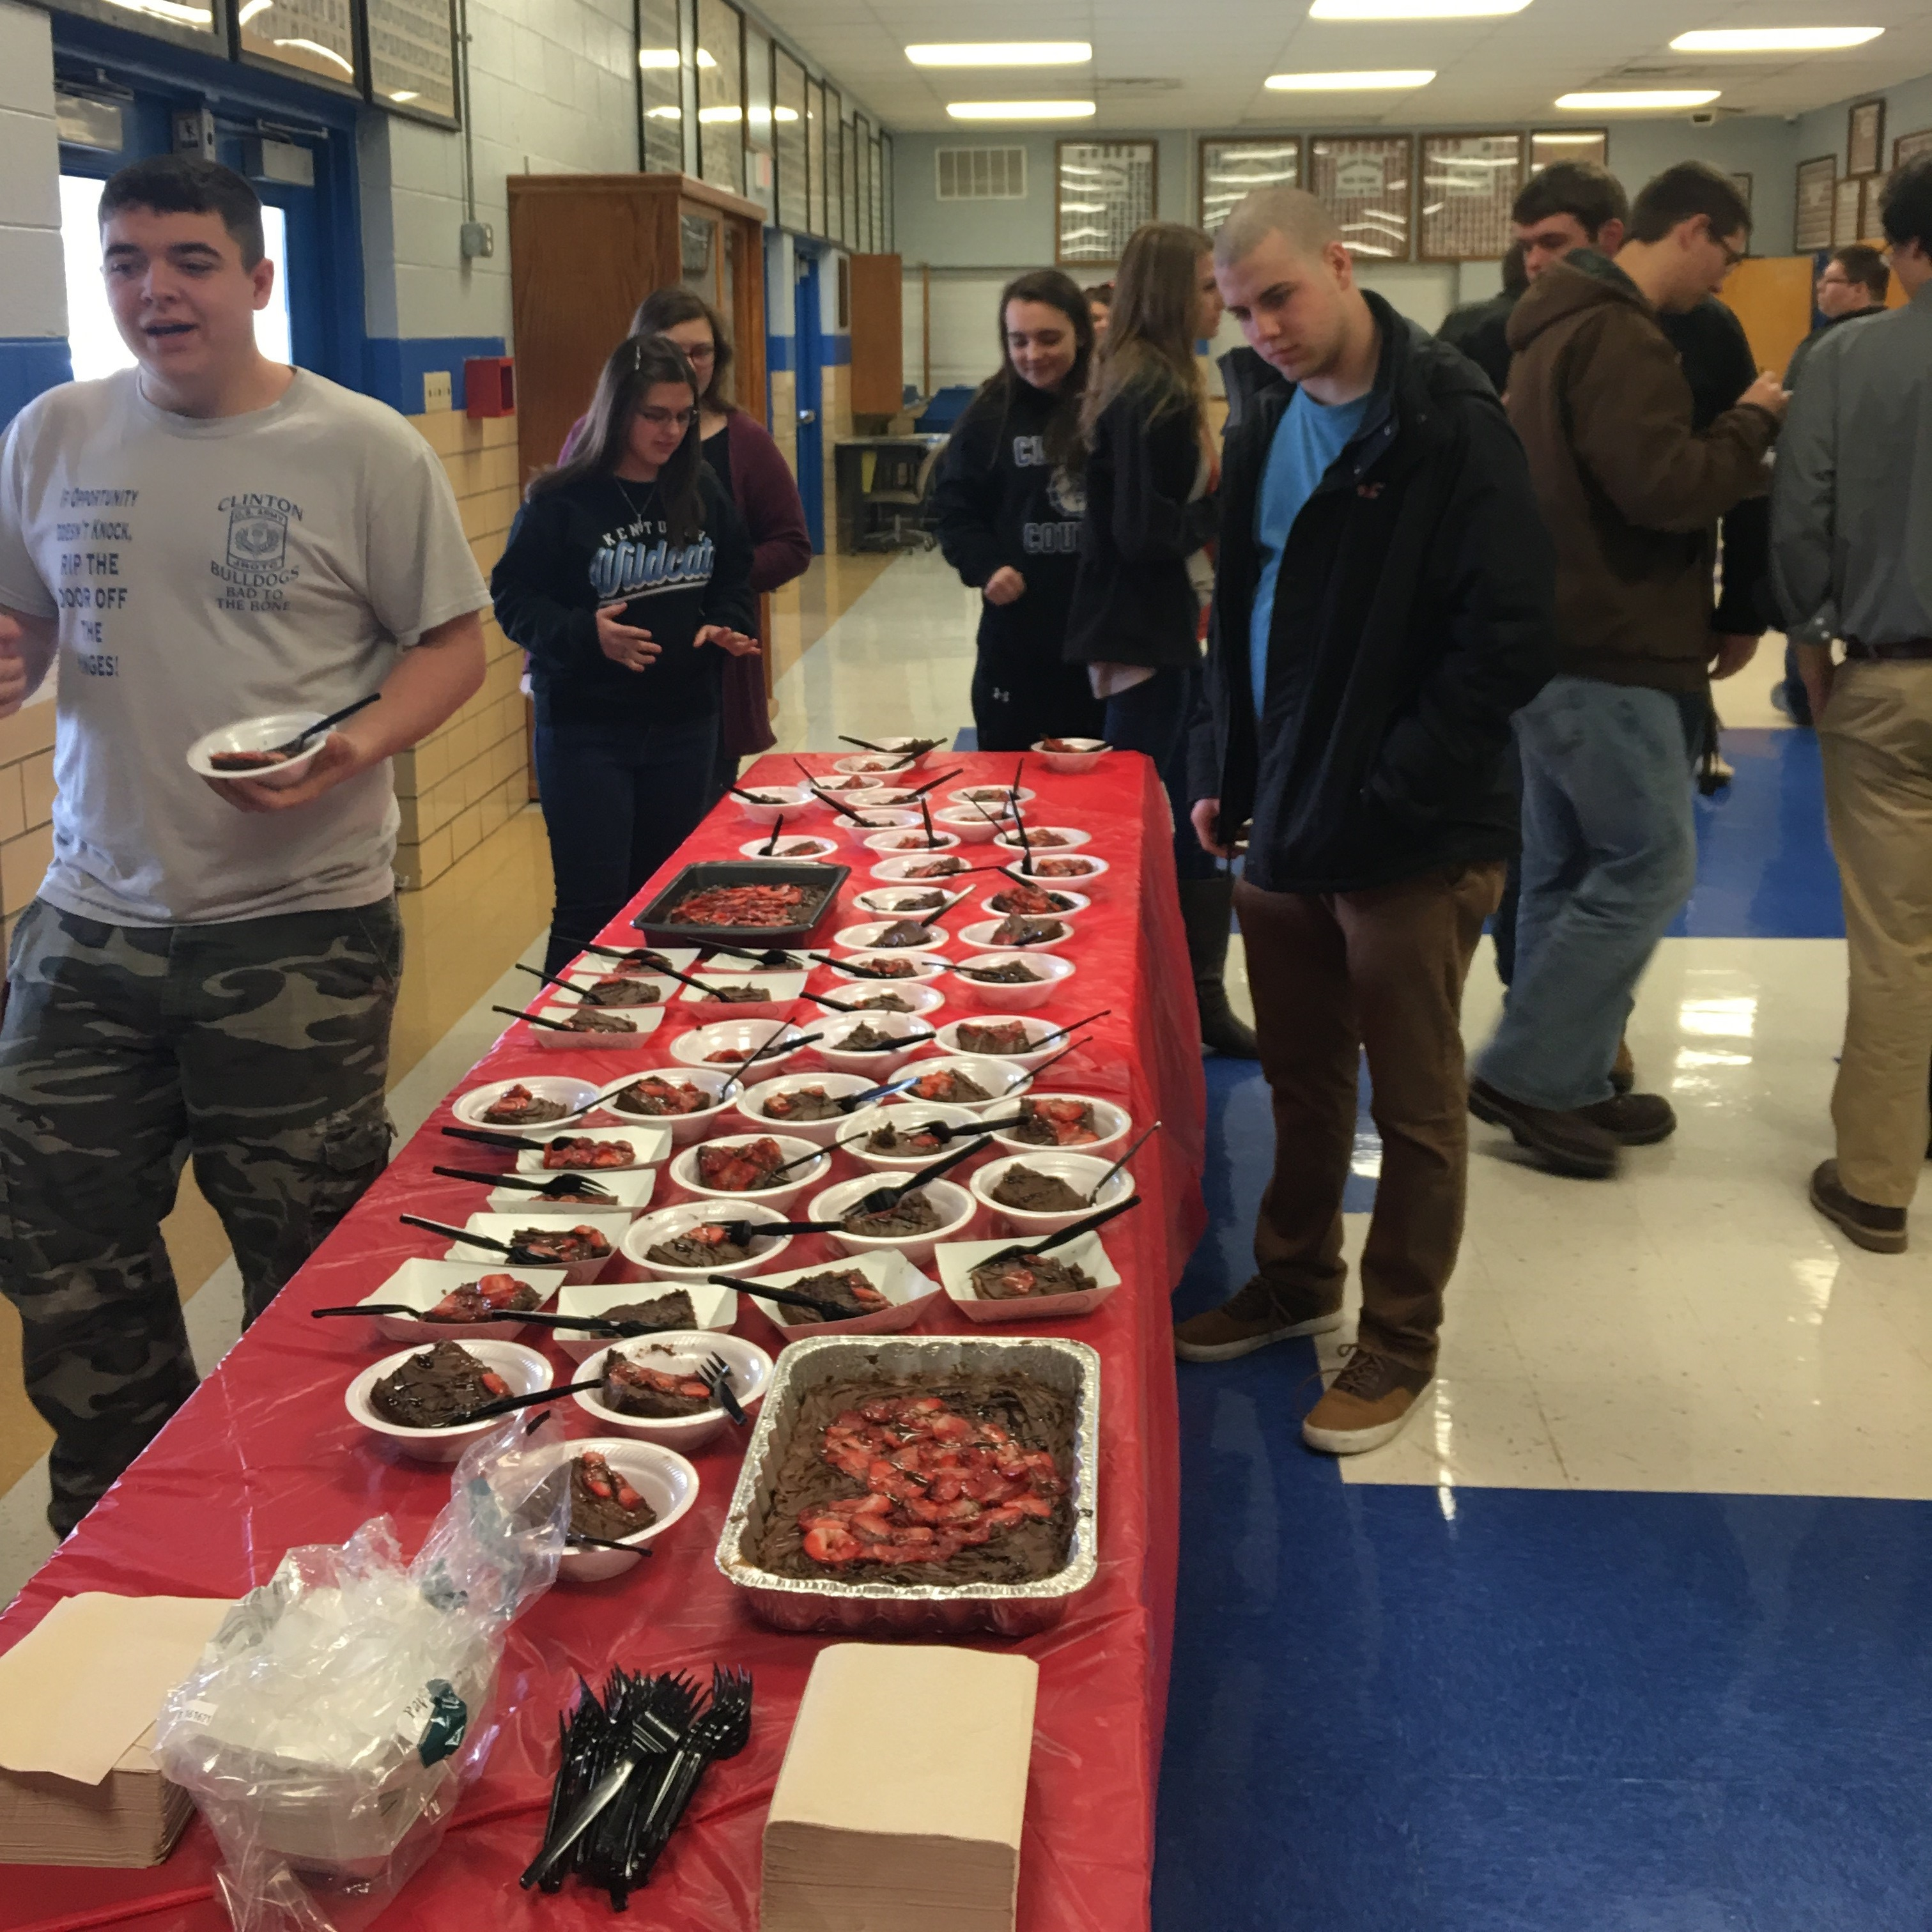 A College and Career Ready Valentine Luncheon was held on February 14th to recognize students who have attained the level of college and career readiness as reflected in their ACT scores, Compass scores, or vocational studies exams.